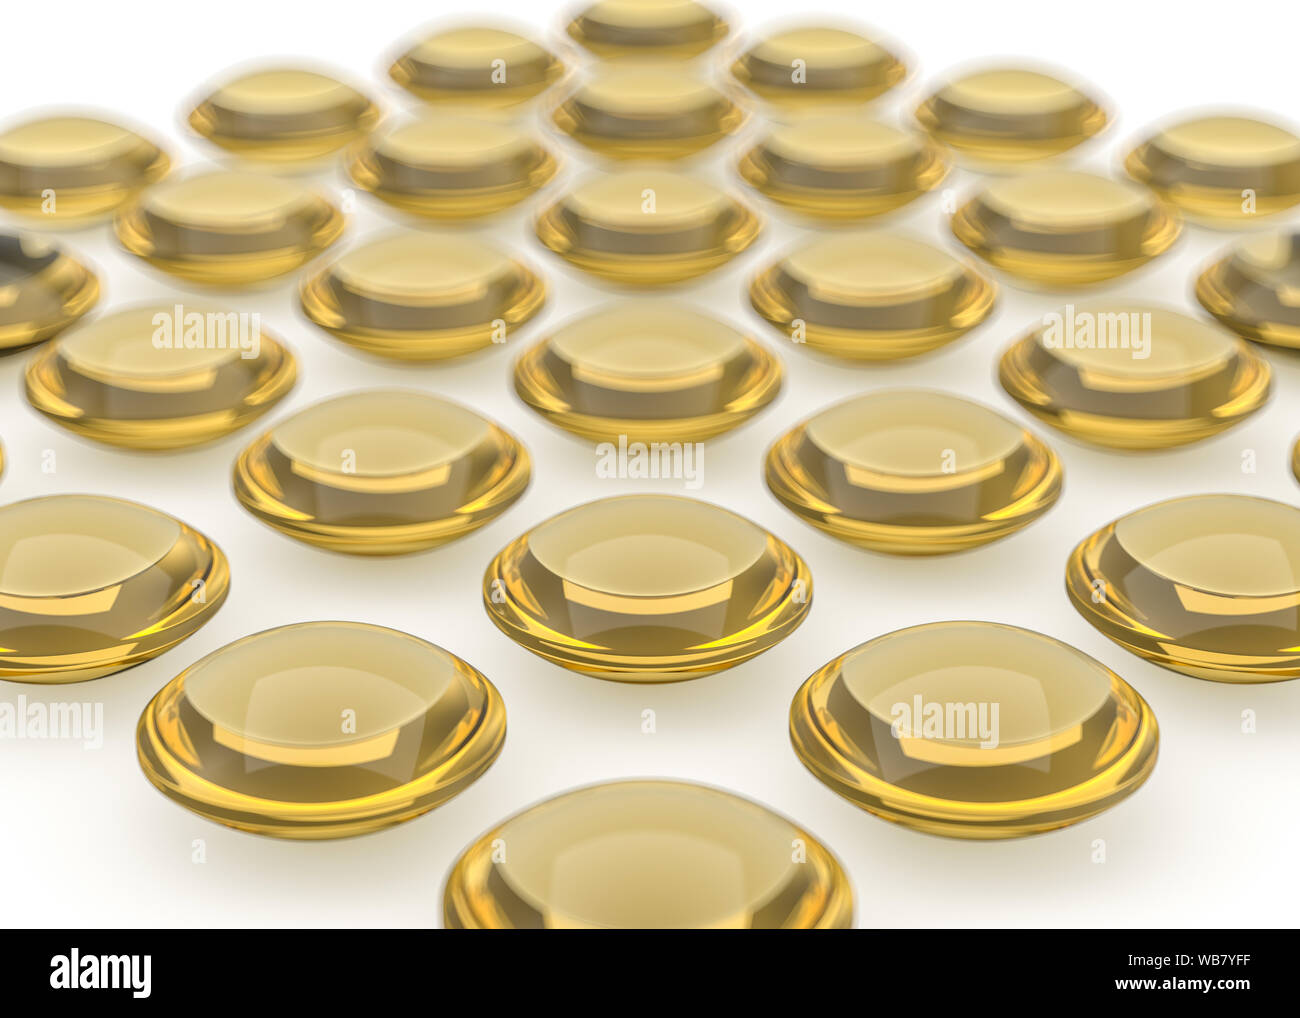 Glossy capsule llustration. Golden image with reflections and shadows. Cosmetic, pharmaceutical and medical concept. 3D rendering Stock Photo